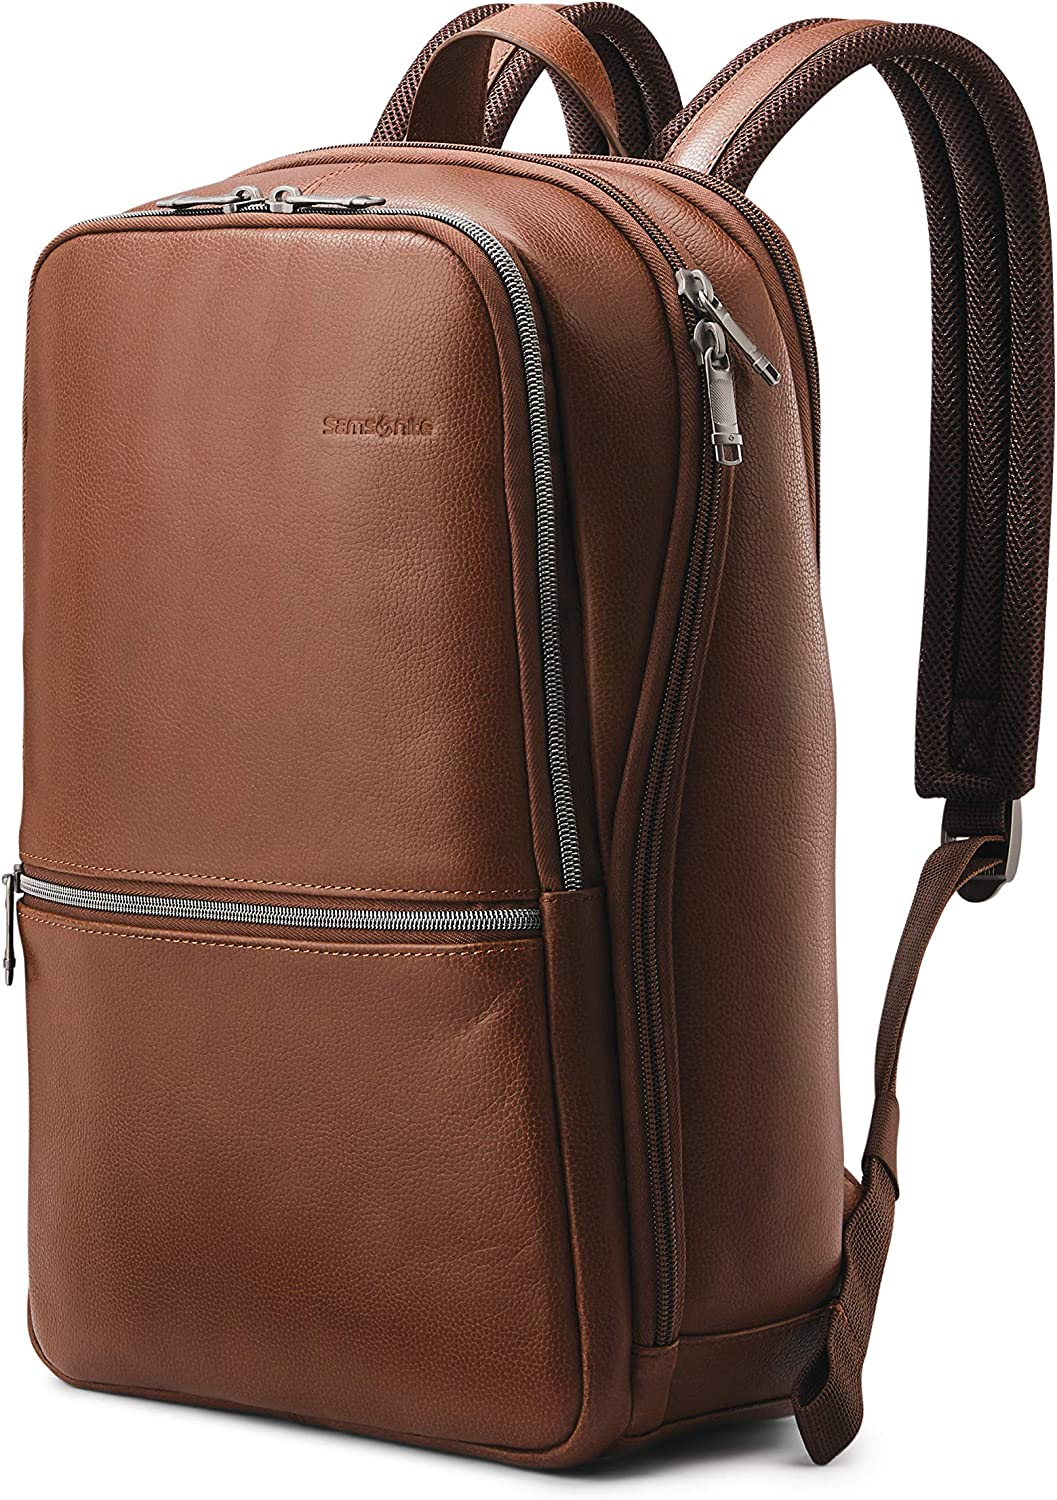 The Best Leather Bagpack With Laptop